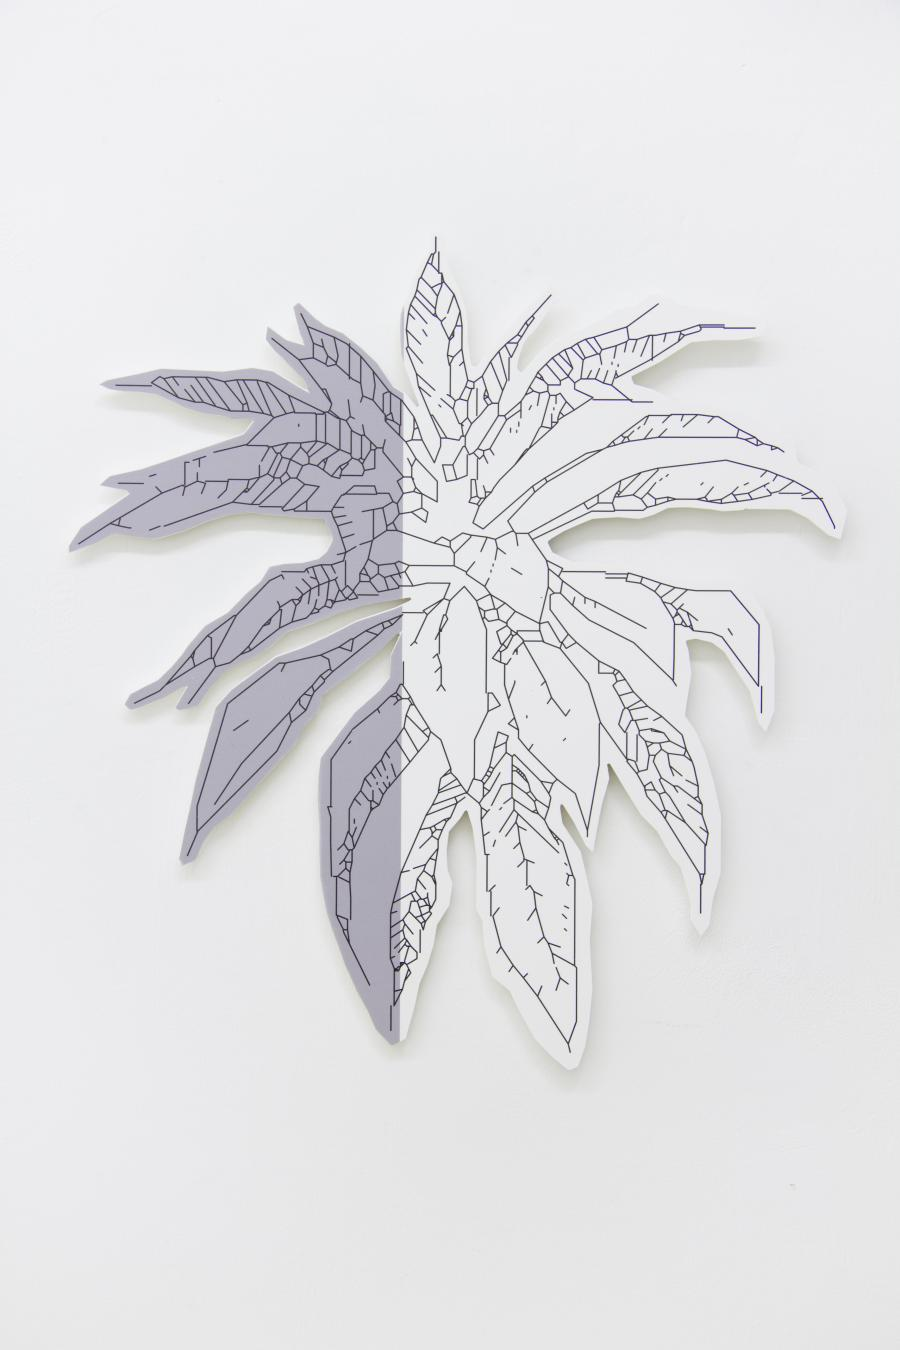 Richard Nikl, Plant (grey), UV-print on PVC, 72 x 77 cm, 2015